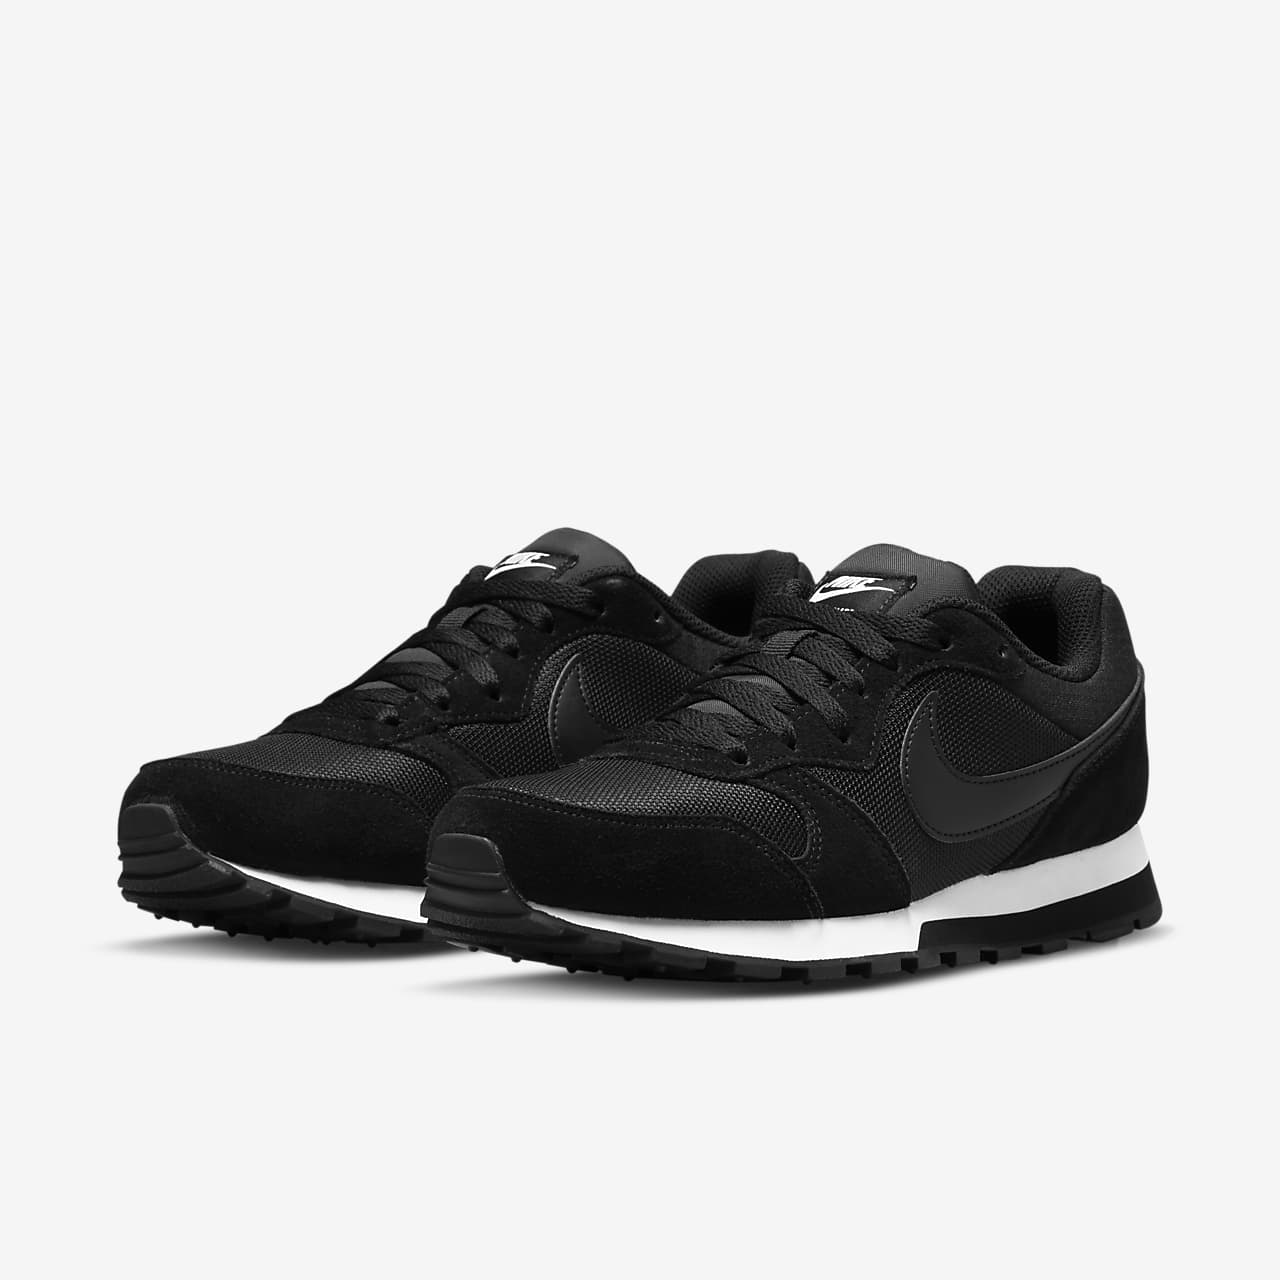 Chaussure Nike MD Runner 2 pour Femme. Nike CH